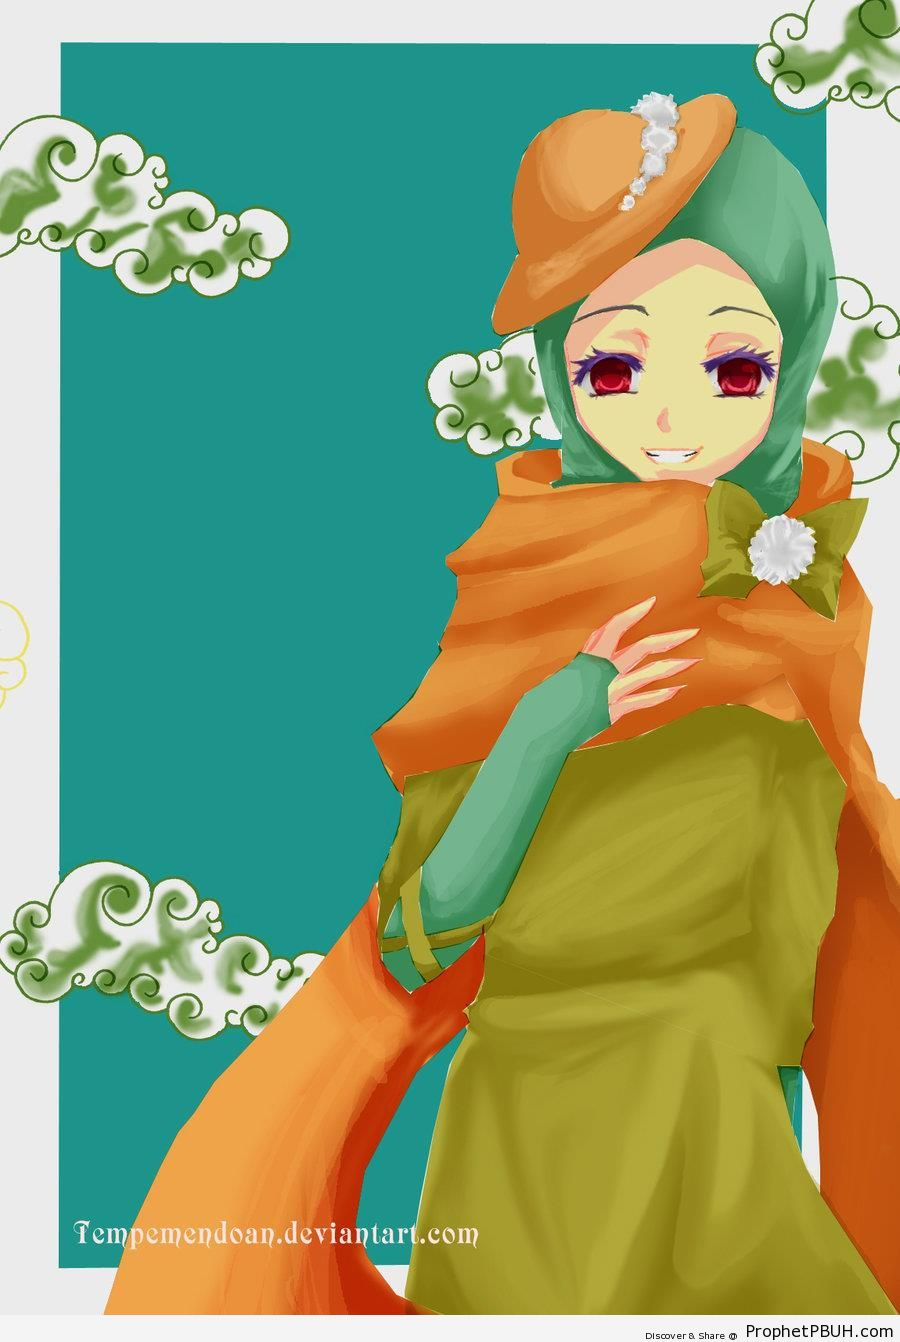 Stylish Muslimah in Hat and Hijab - Drawings